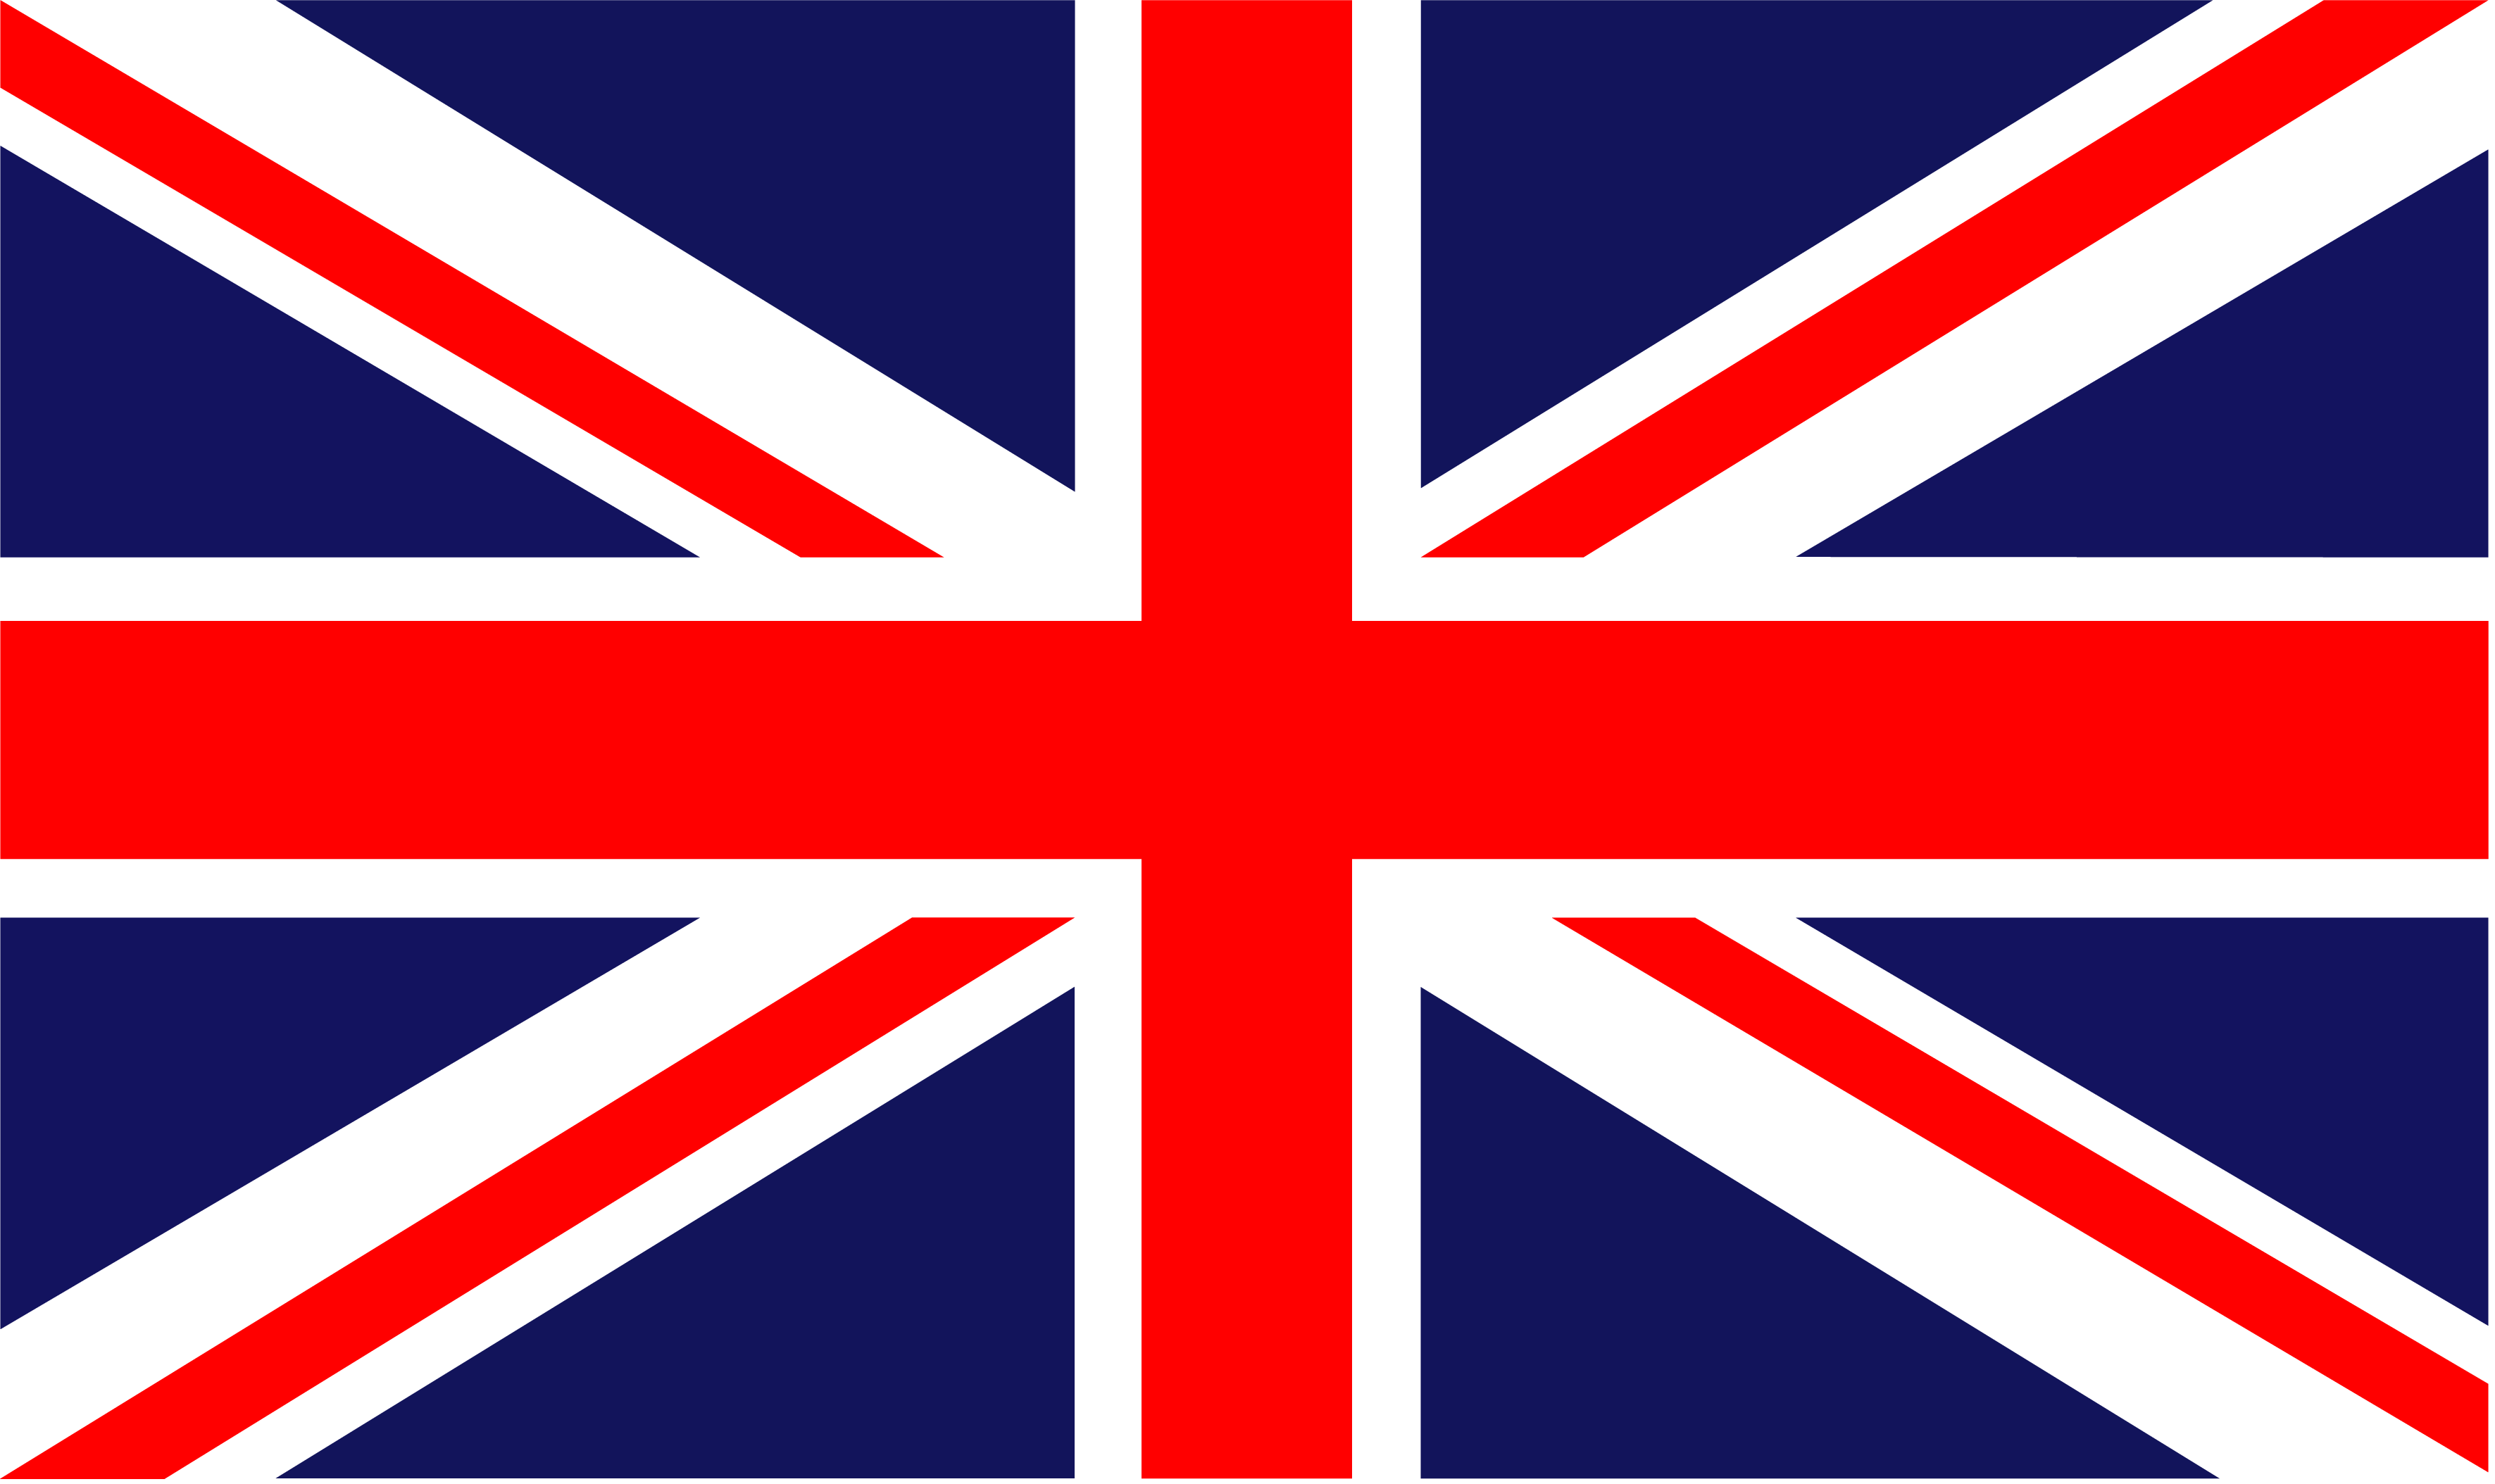 Images Of British Flag - ClipArt Best